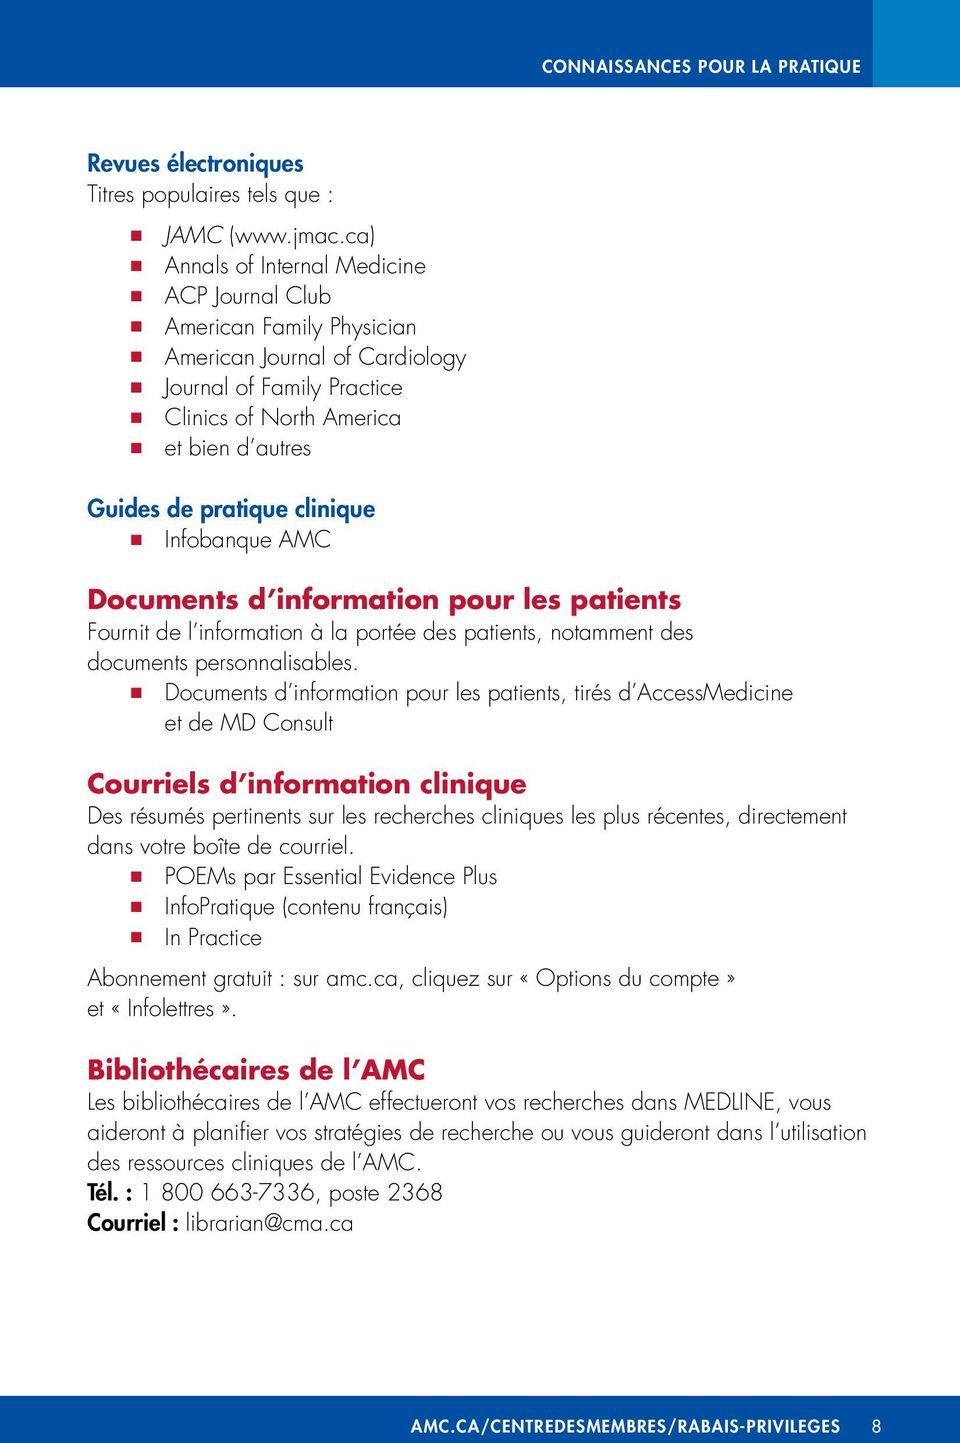 clinique Infobanque AMC Documents d information pour les patients Fournit de l information à la portée des patients, notamment des documents personnalisables.